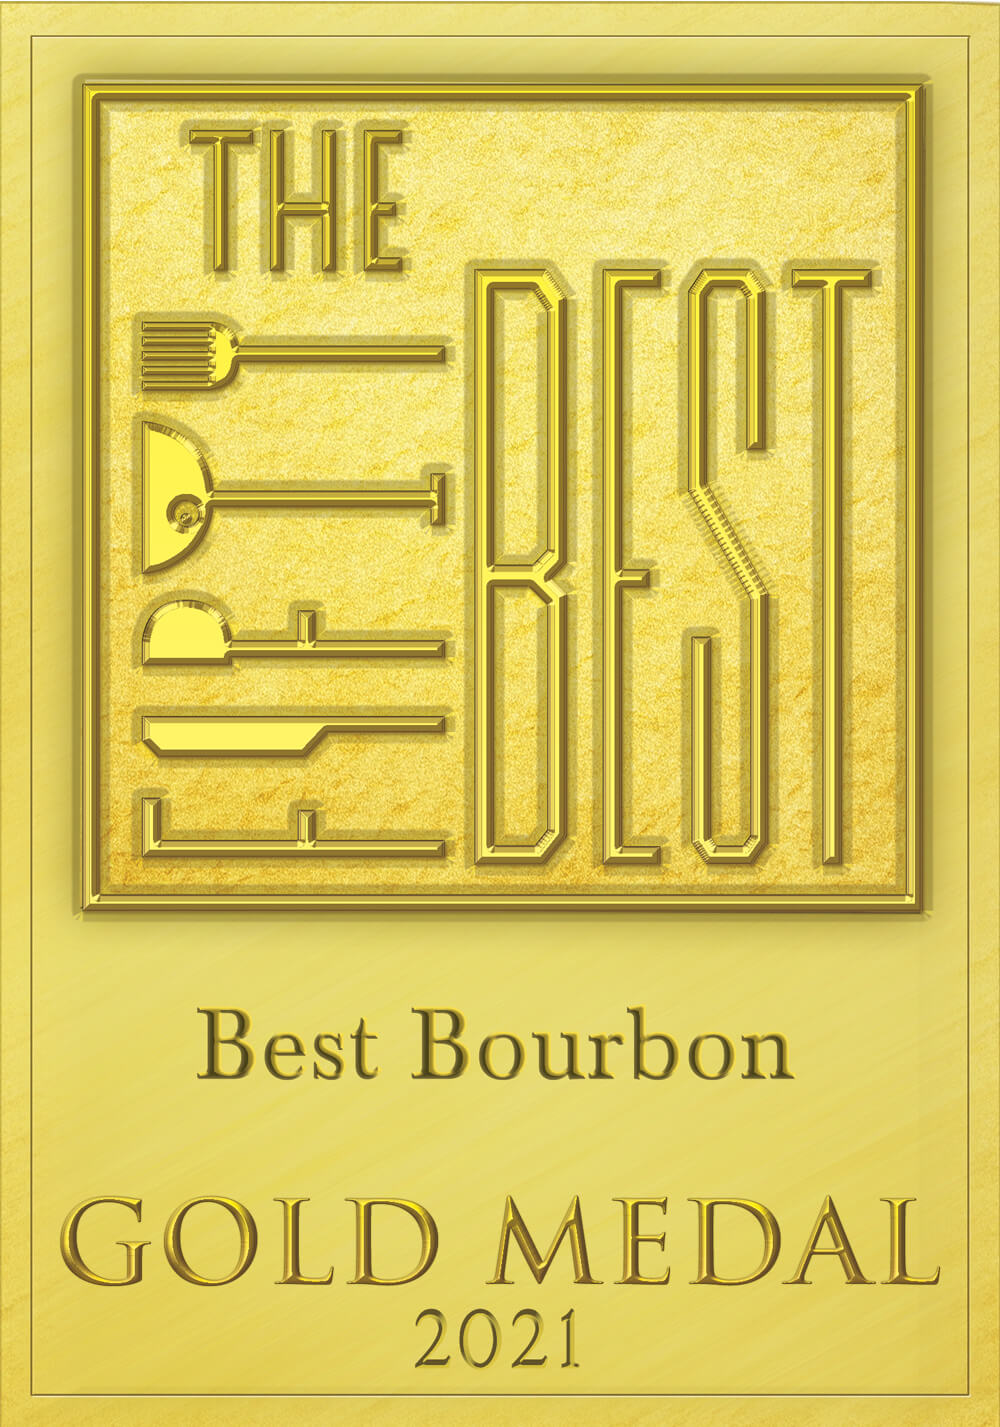 TheFiftyBest_Bourbon_GoldMedal_2021